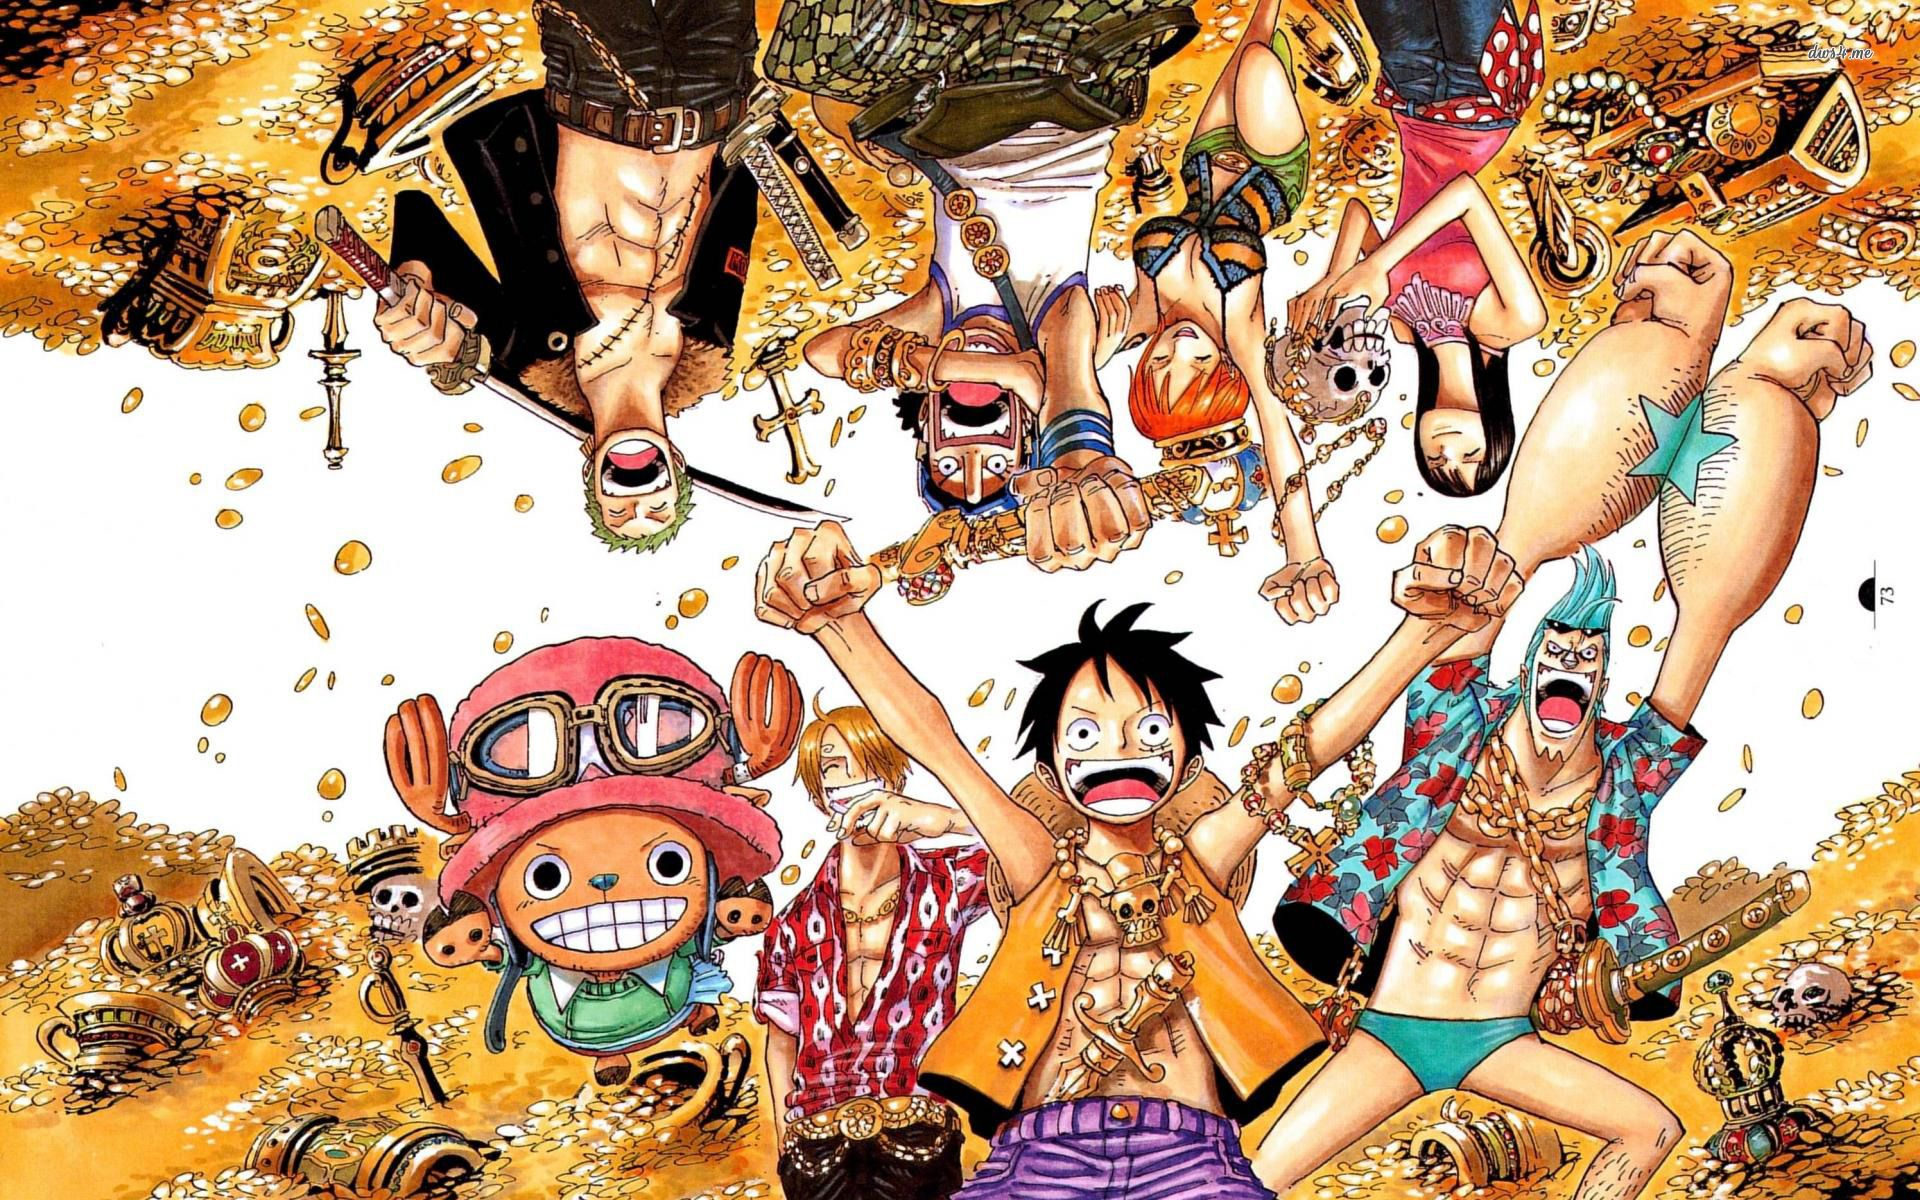 One Piece Aesthetic Wallpapers Top Free One Piece Aesthetic Backgrounds Wallpaperaccess